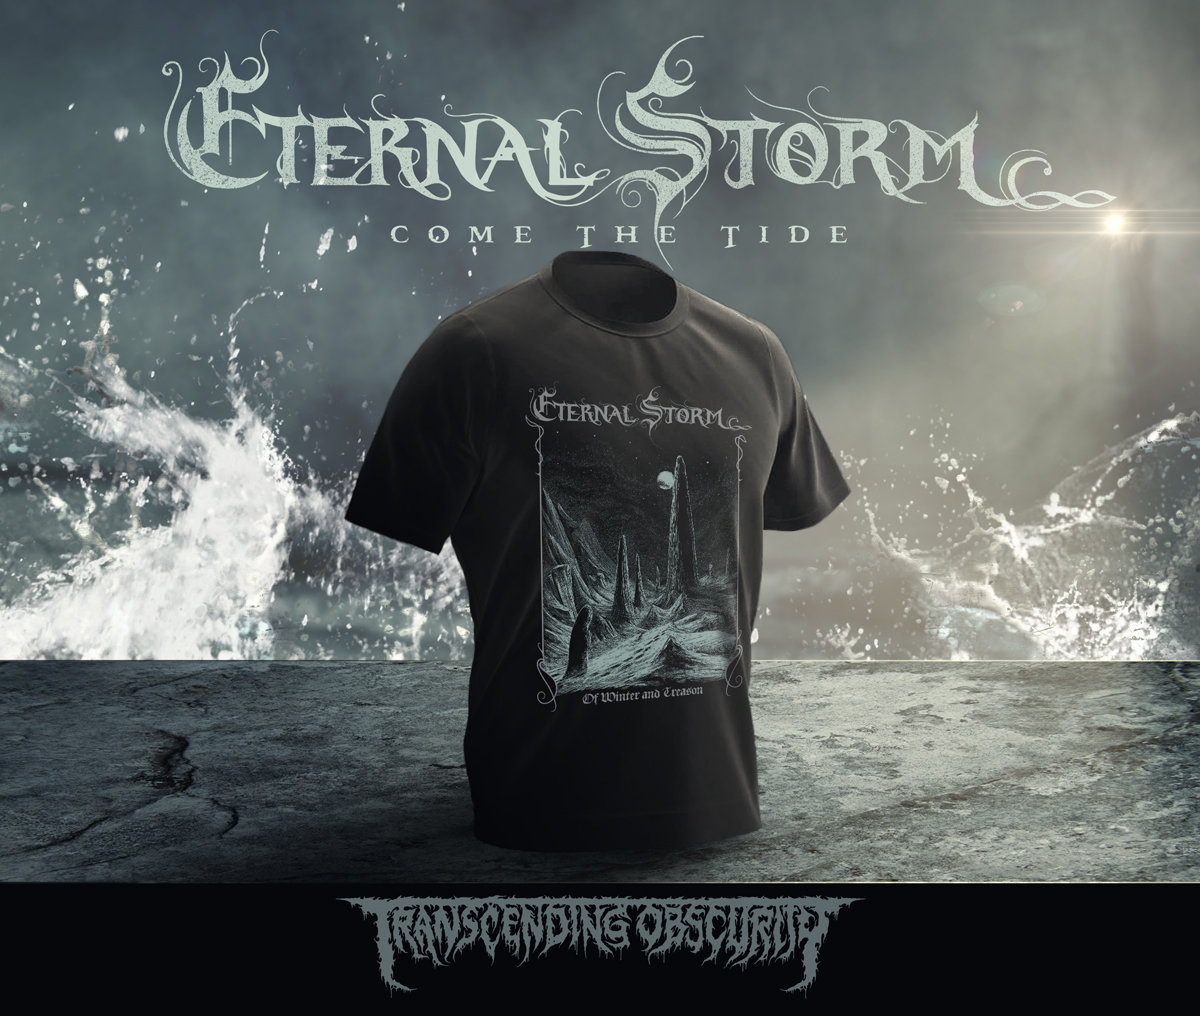 ETERNAL STORM (Spain) - Come The Tide T-shirt (Pre-orders only!)